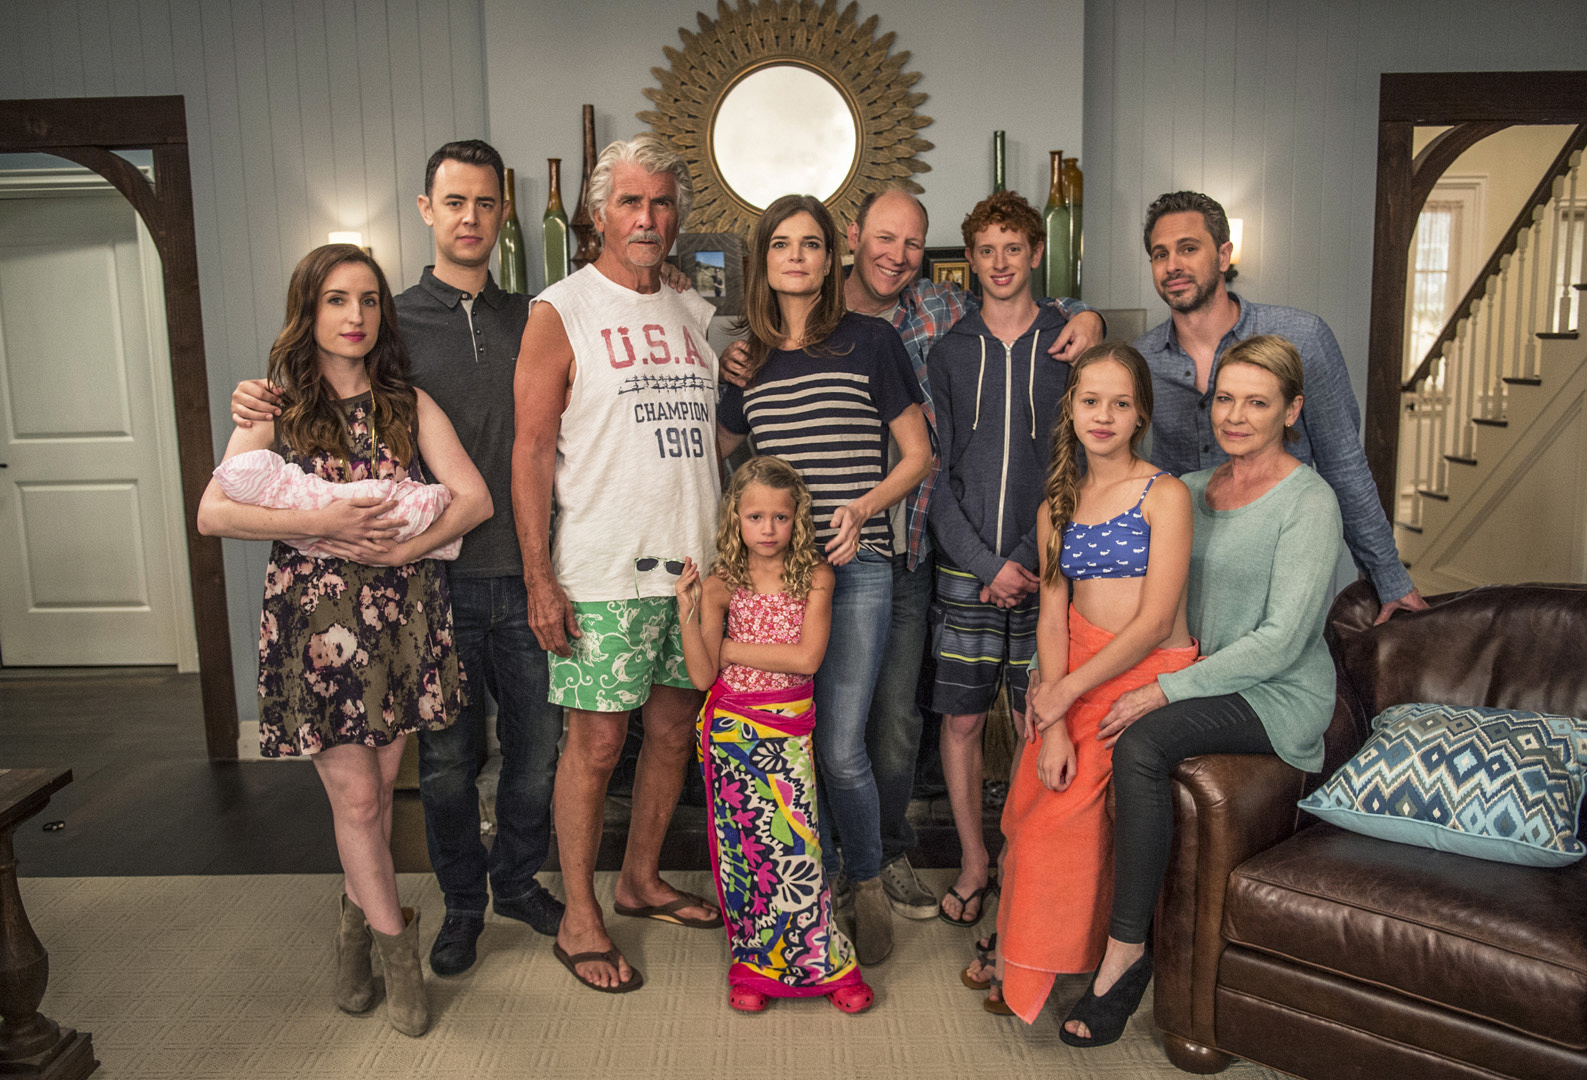 11. The Short Family From Life in Pieces